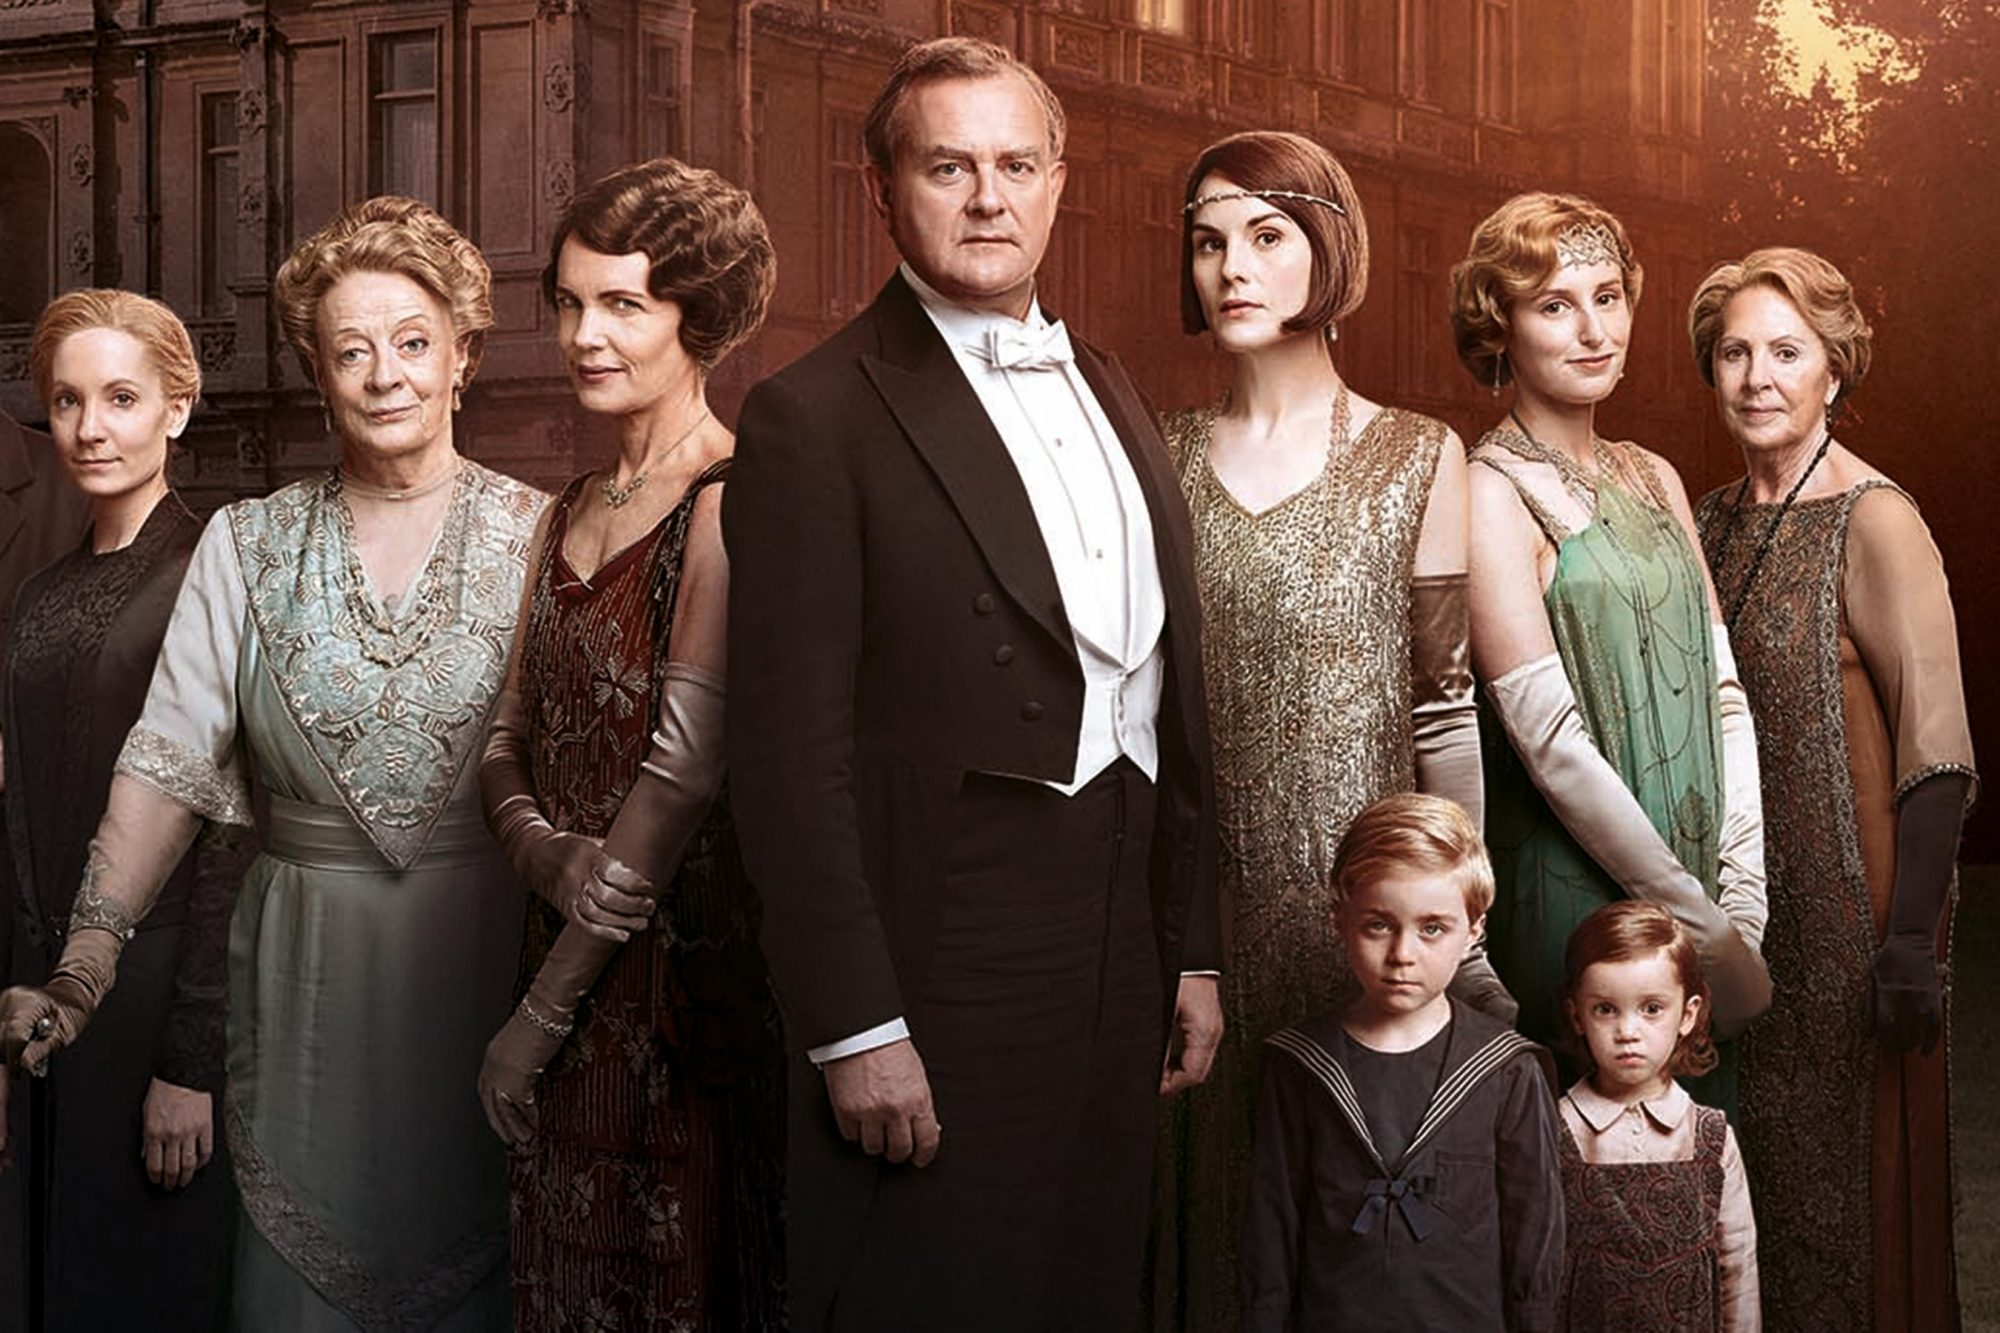 A return to Downton Abbey